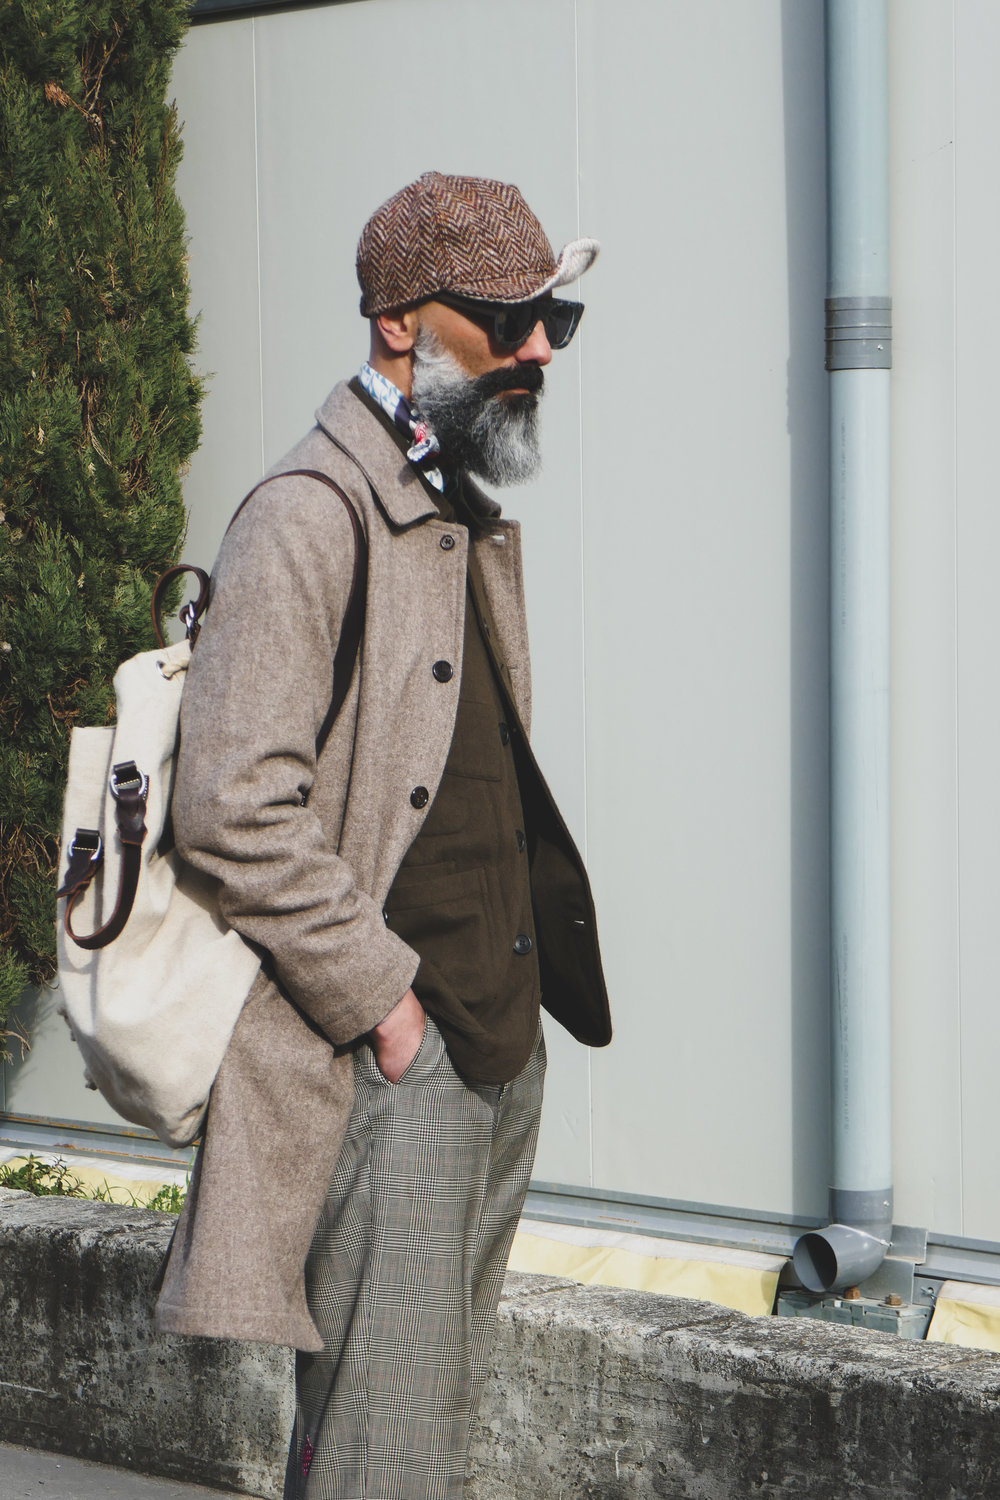 Pitti Uomo (international menswear event held in Florence) 2017